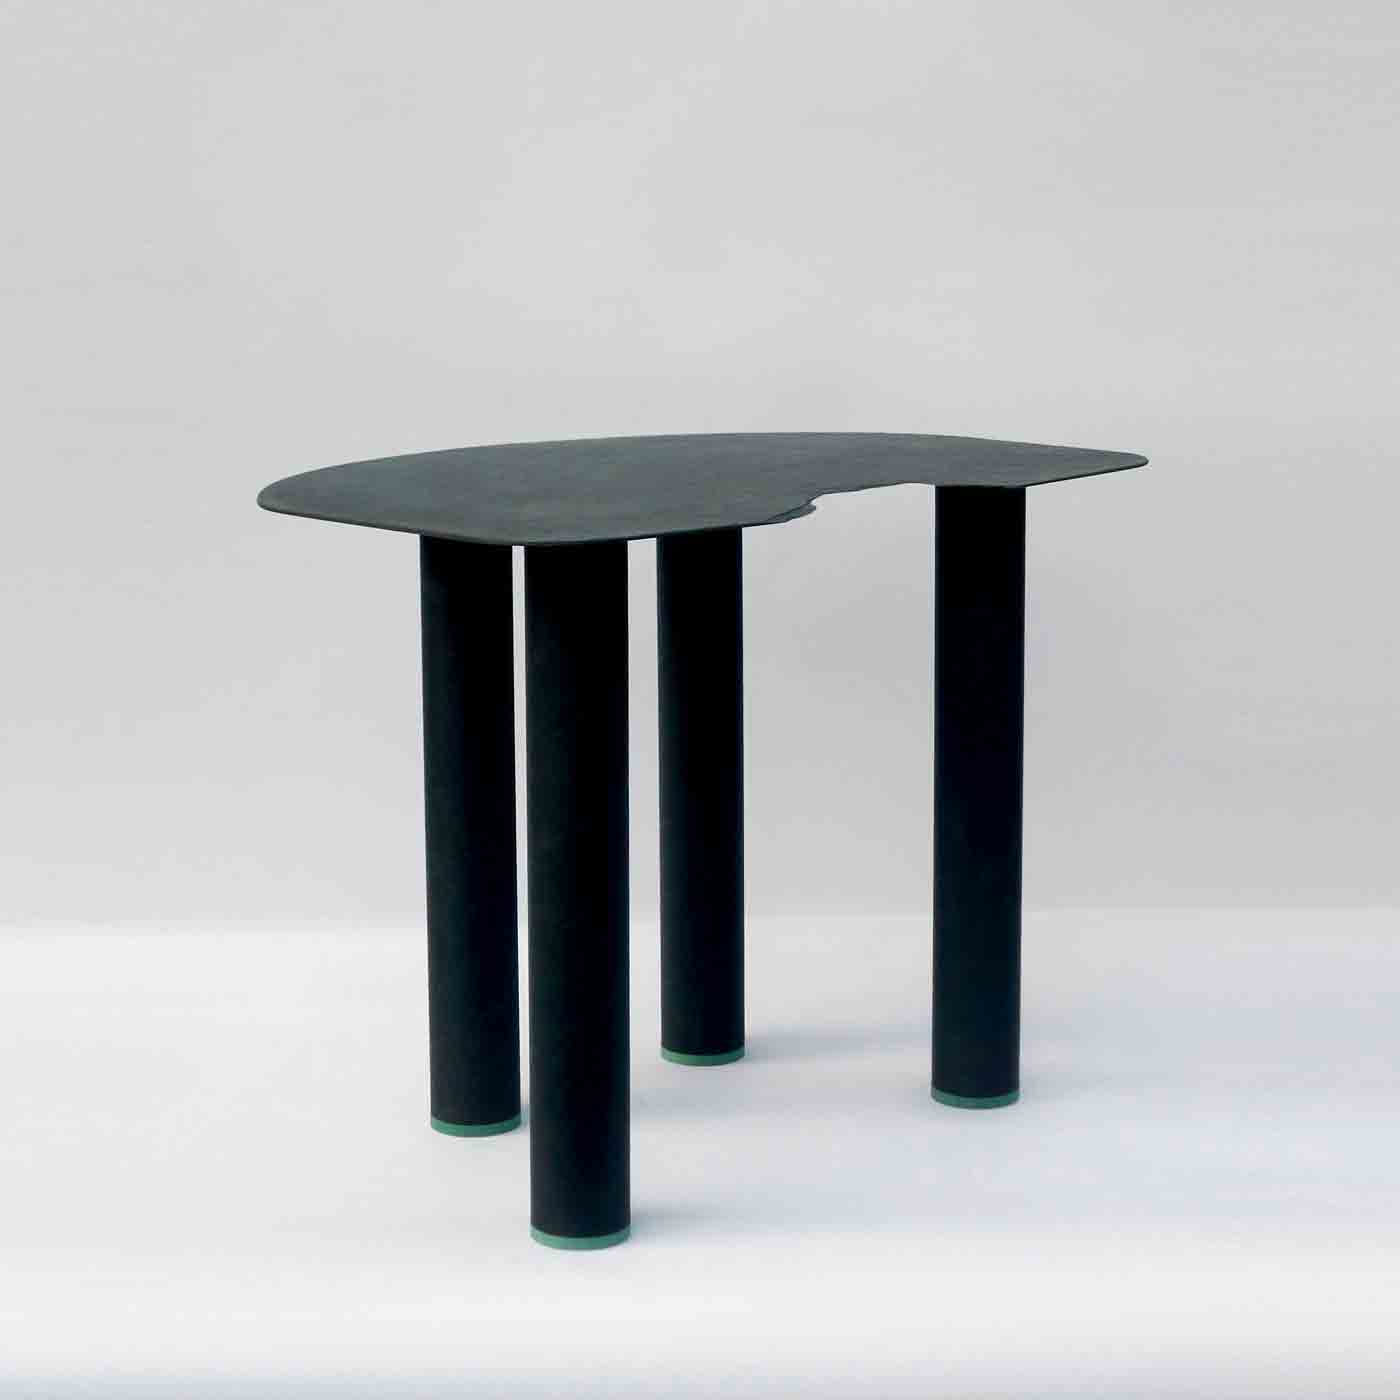 CHE-URY-Laetitia-de-Allegri+Matteo-Fogale-ish-side-table